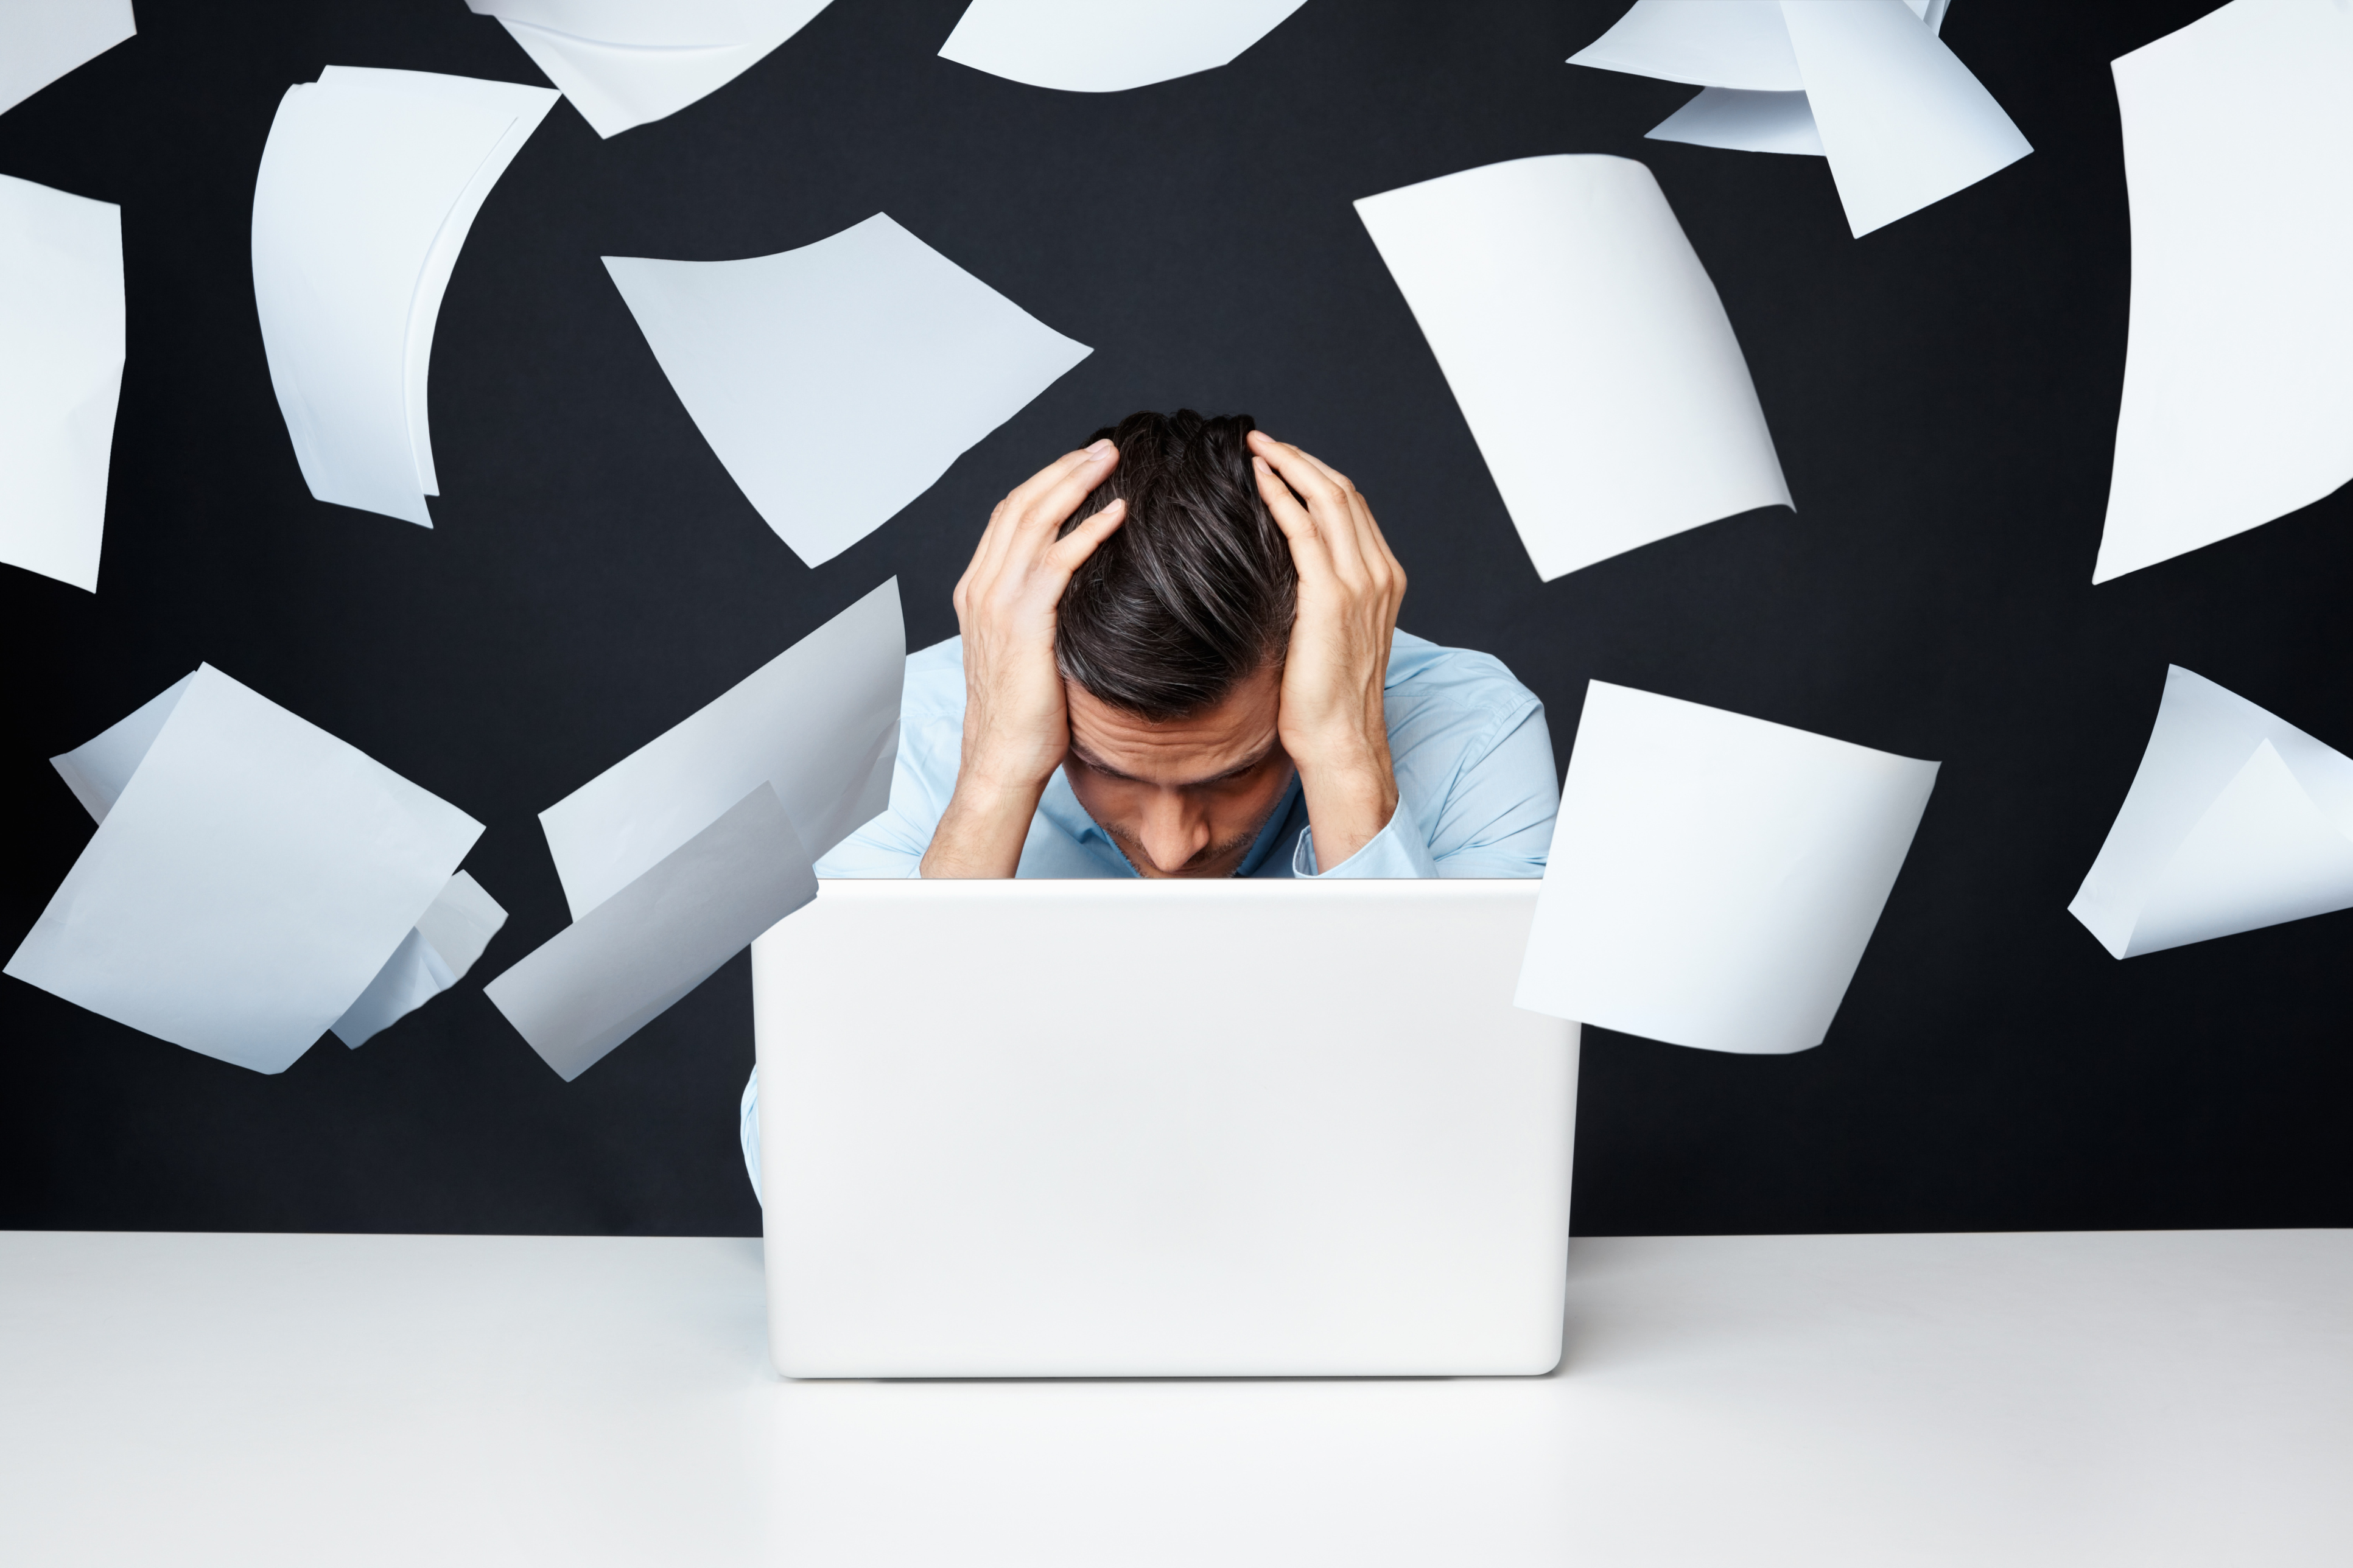 Man with hand on head looking at laptop with papers flying